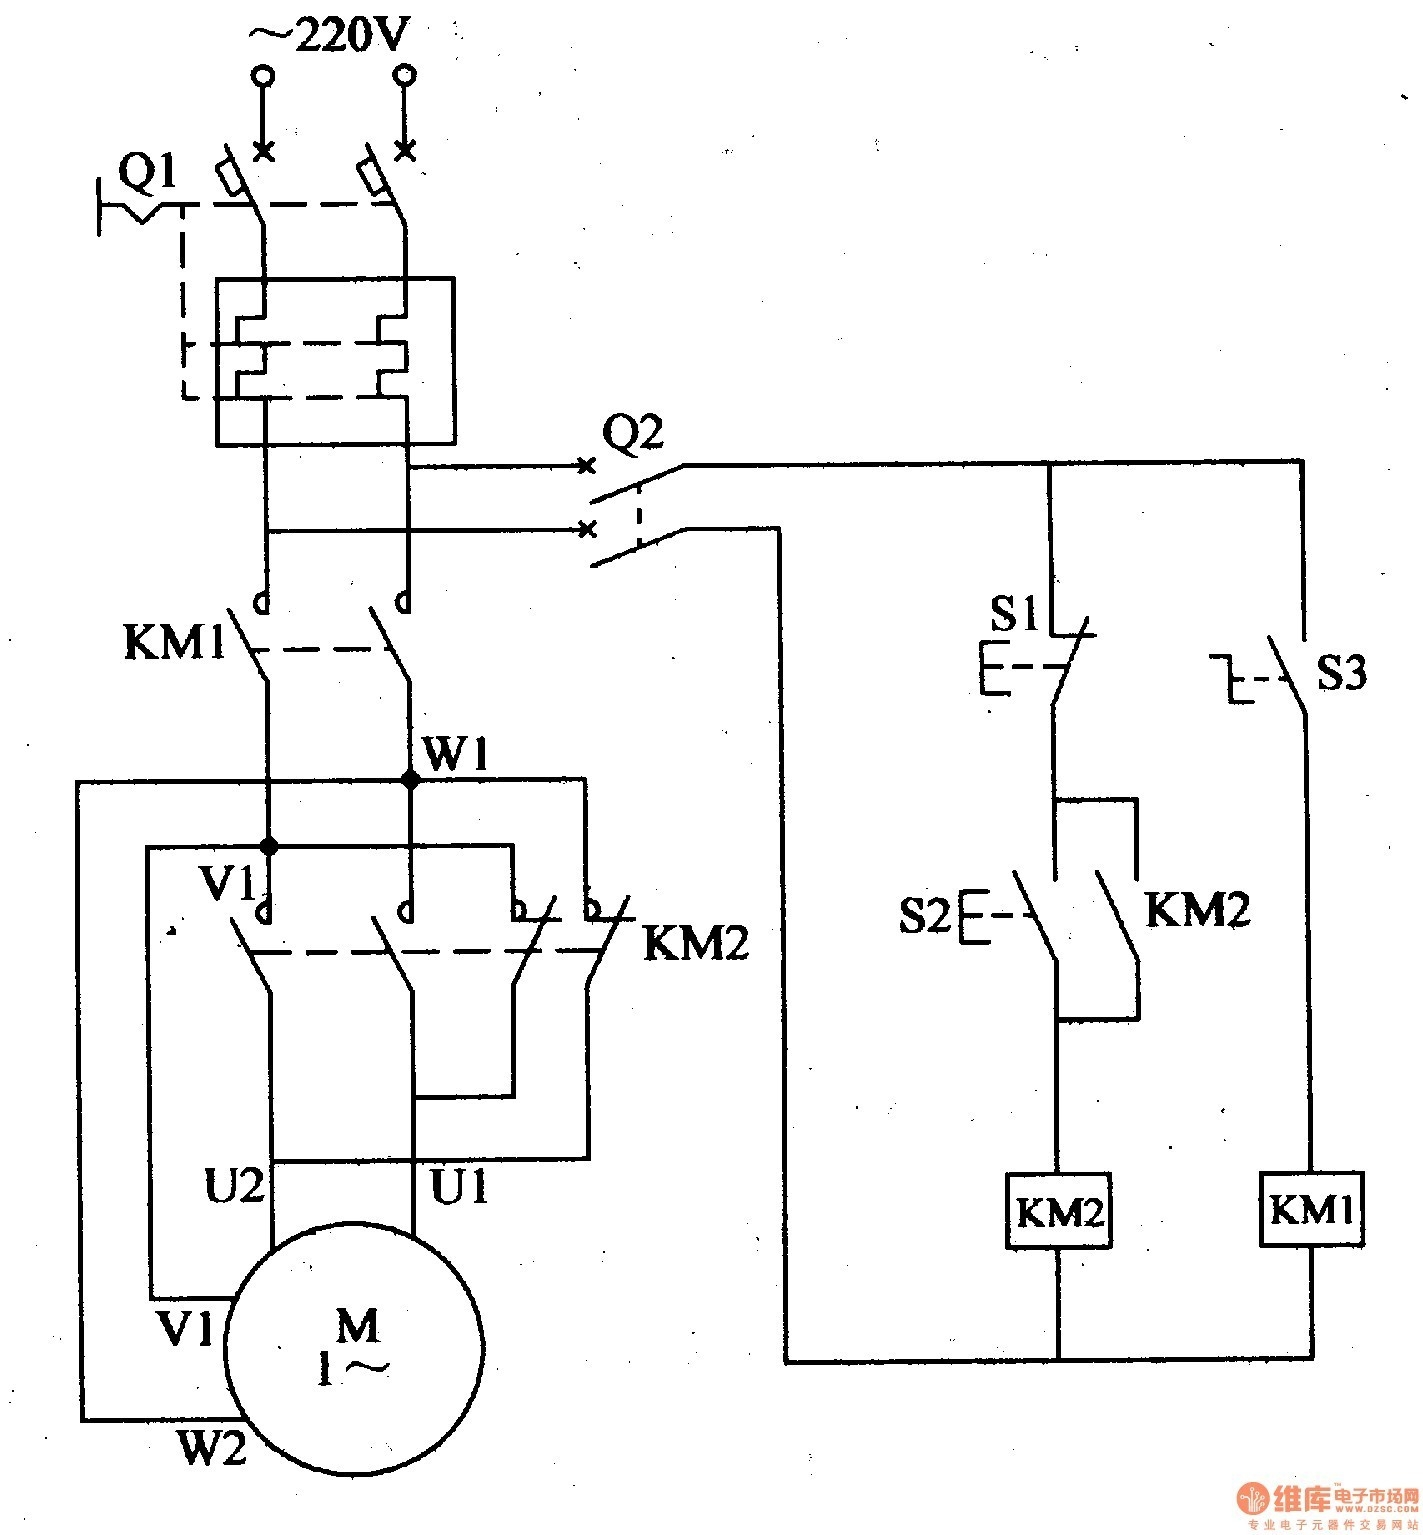 single phase motor starter wiring diagram Collection-Wiring Diagram for Motor Contactor Best Wiring Diagram Motor Fresh Single Phase Motor Starter Wiring 15-f